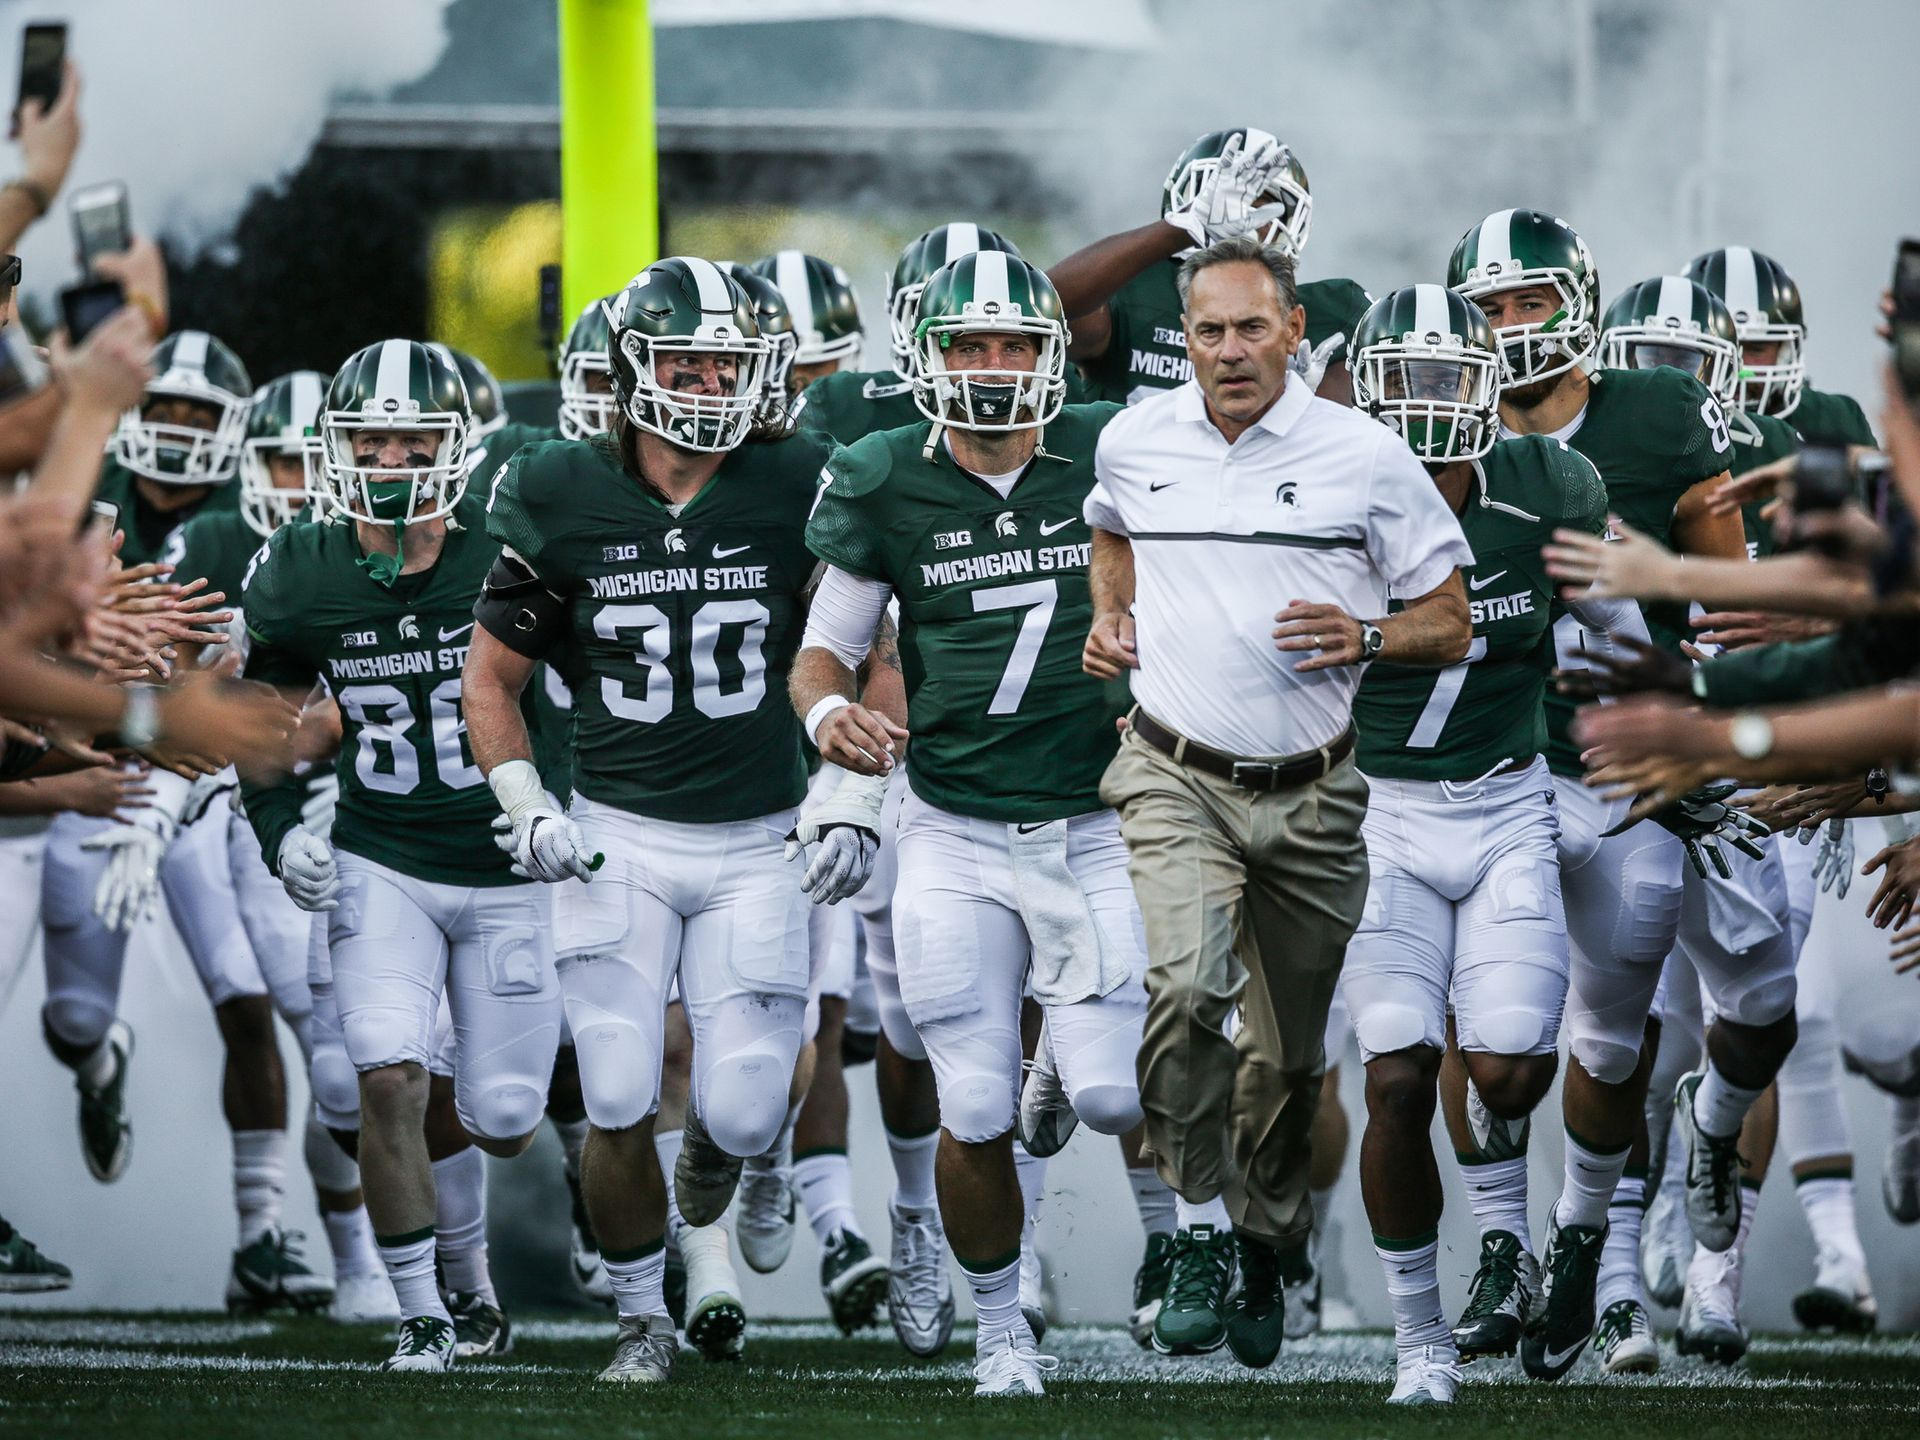 The Michigan State Spartans Team Runs Out Of The Tunnel Led By Head Coach Mark Dantonio Before Their Season Op Michigan State Michigan Michigan State Spartans